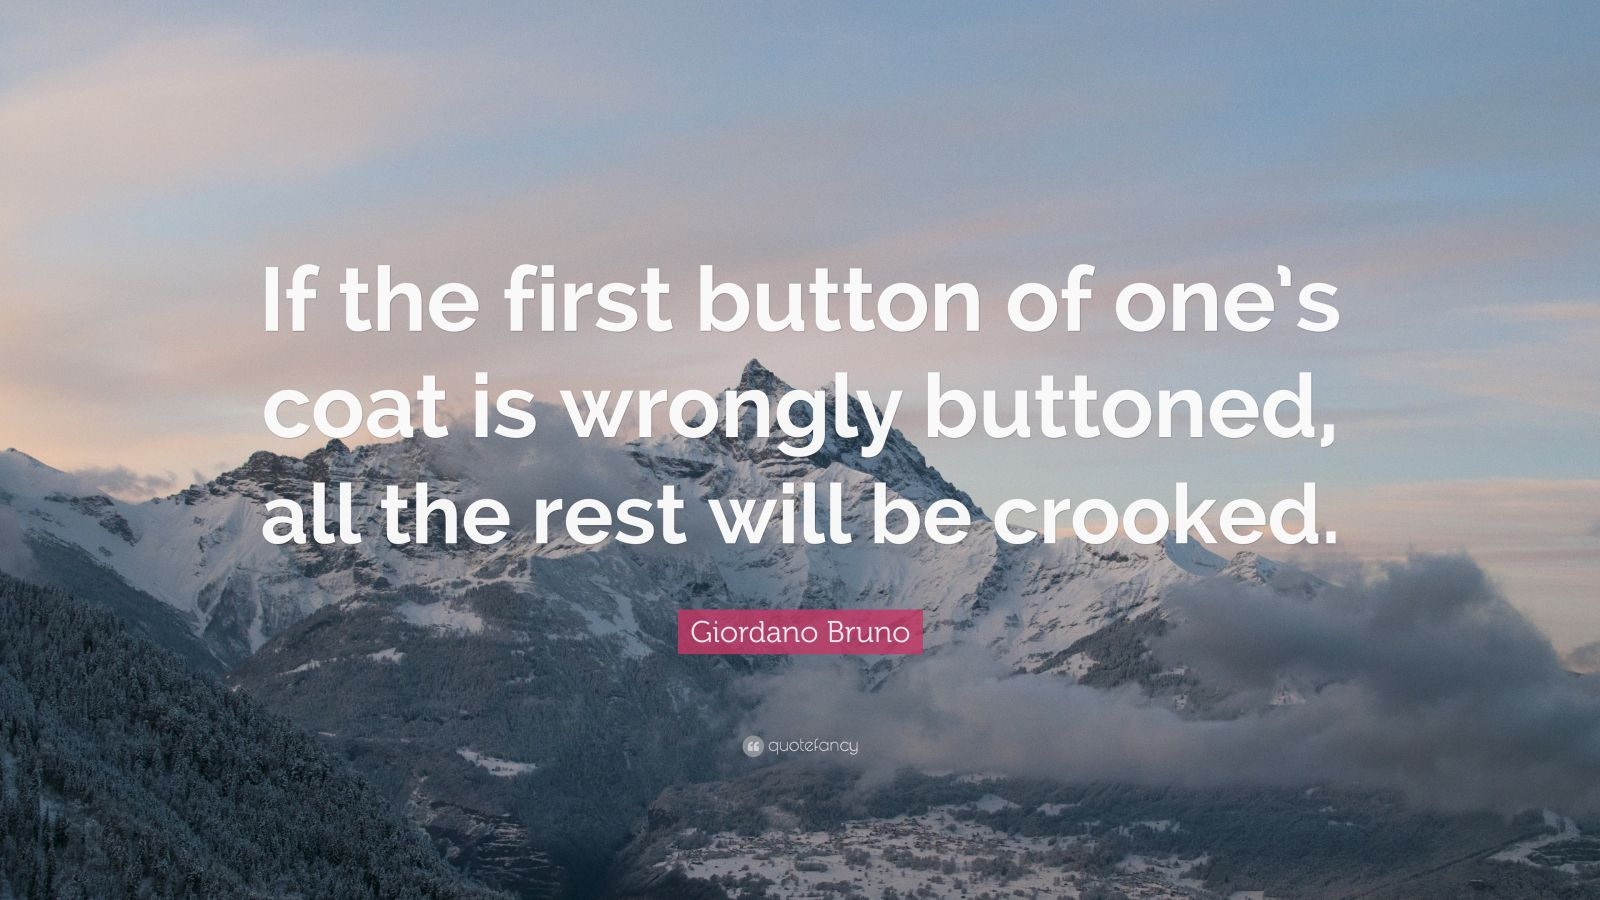 """Giordano Bruno Quote: """"If the first button of one's coat is wrongly buttoned, all the rest will be crooked."""""""